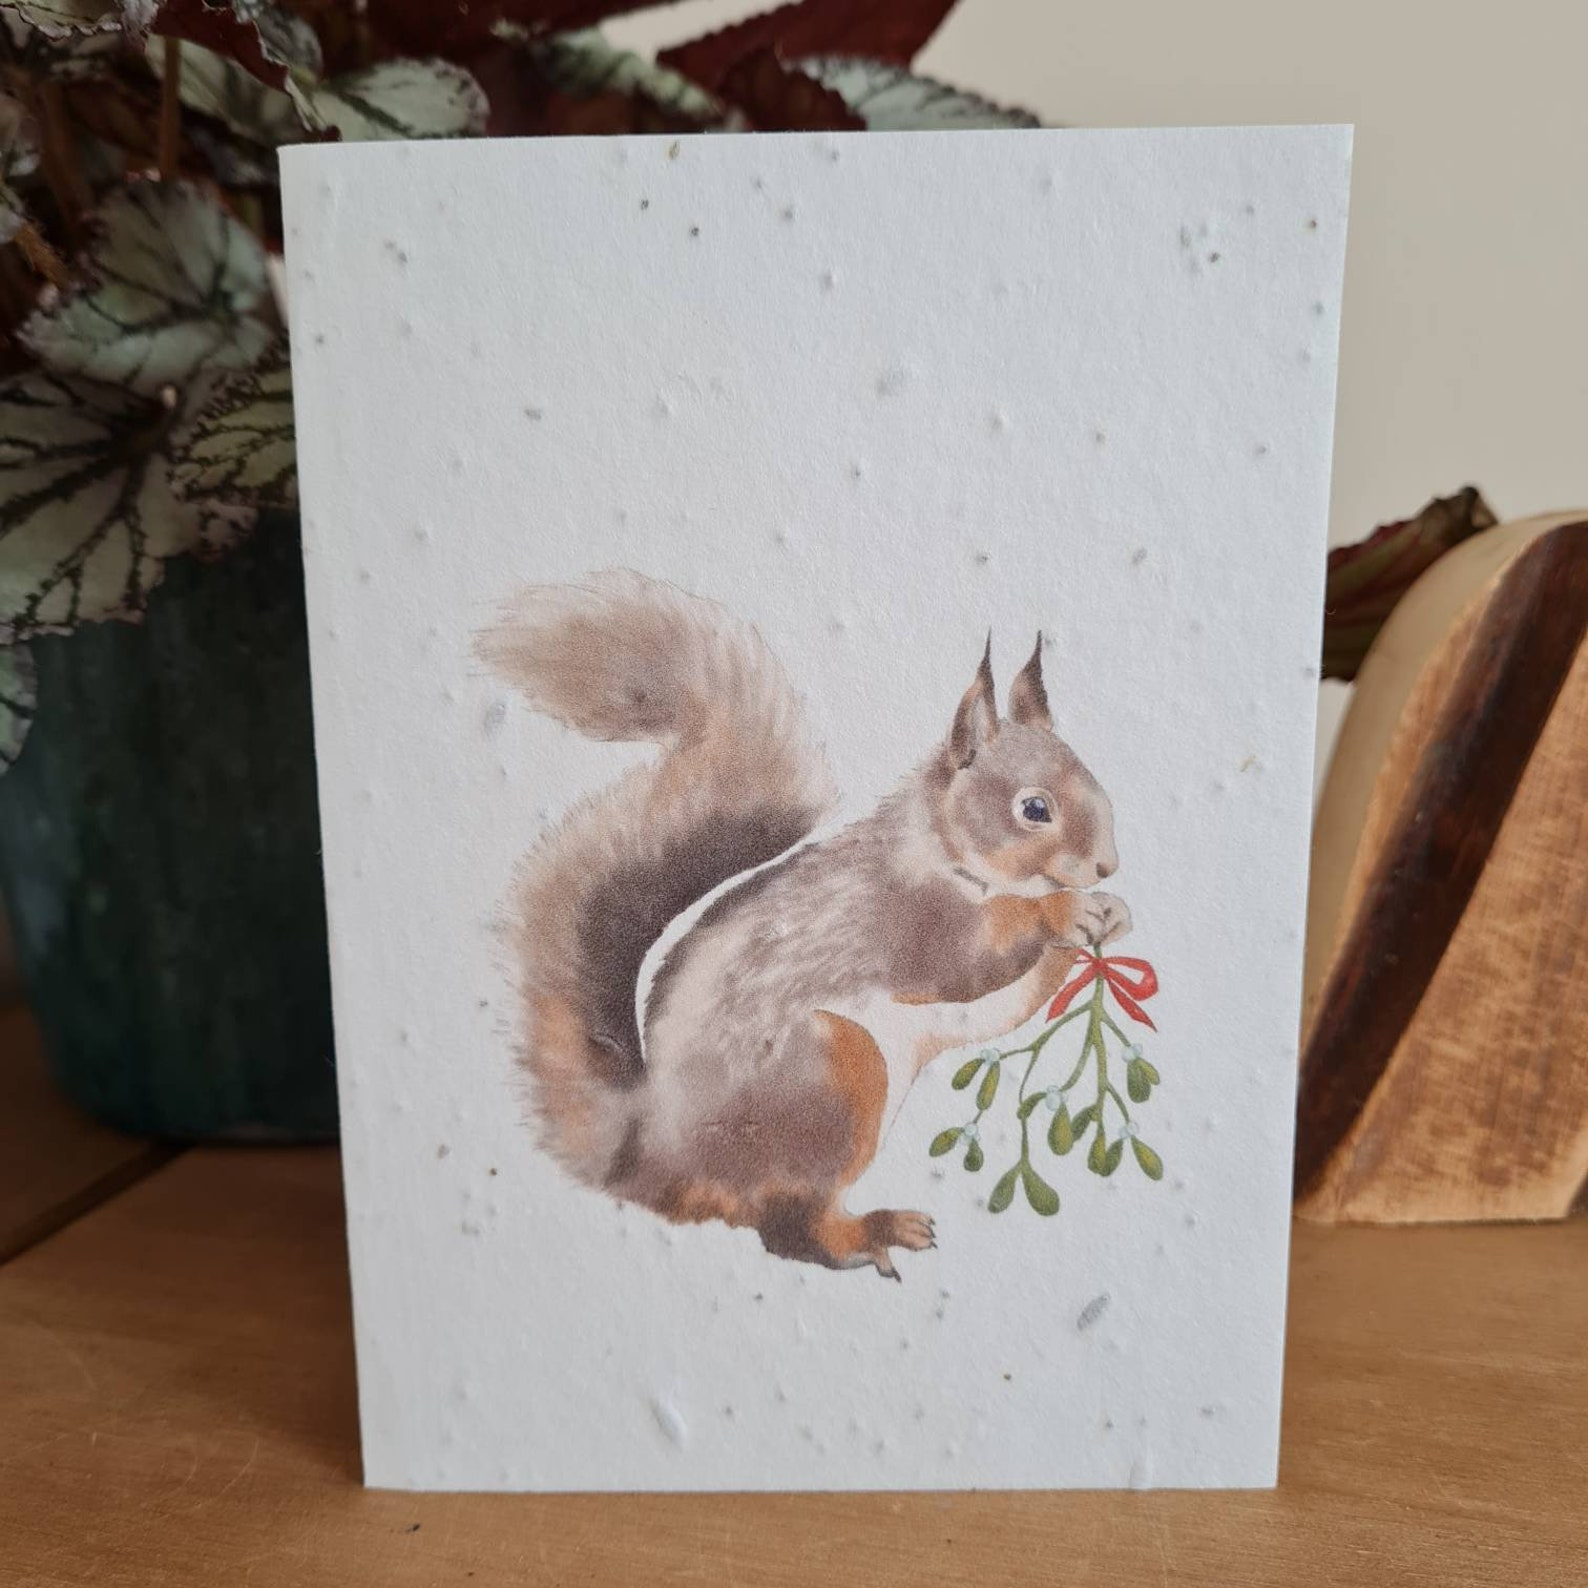 Plantable Wildflower Seed Christmas Card With Santa Squirrel - Bee and Eco Friendly